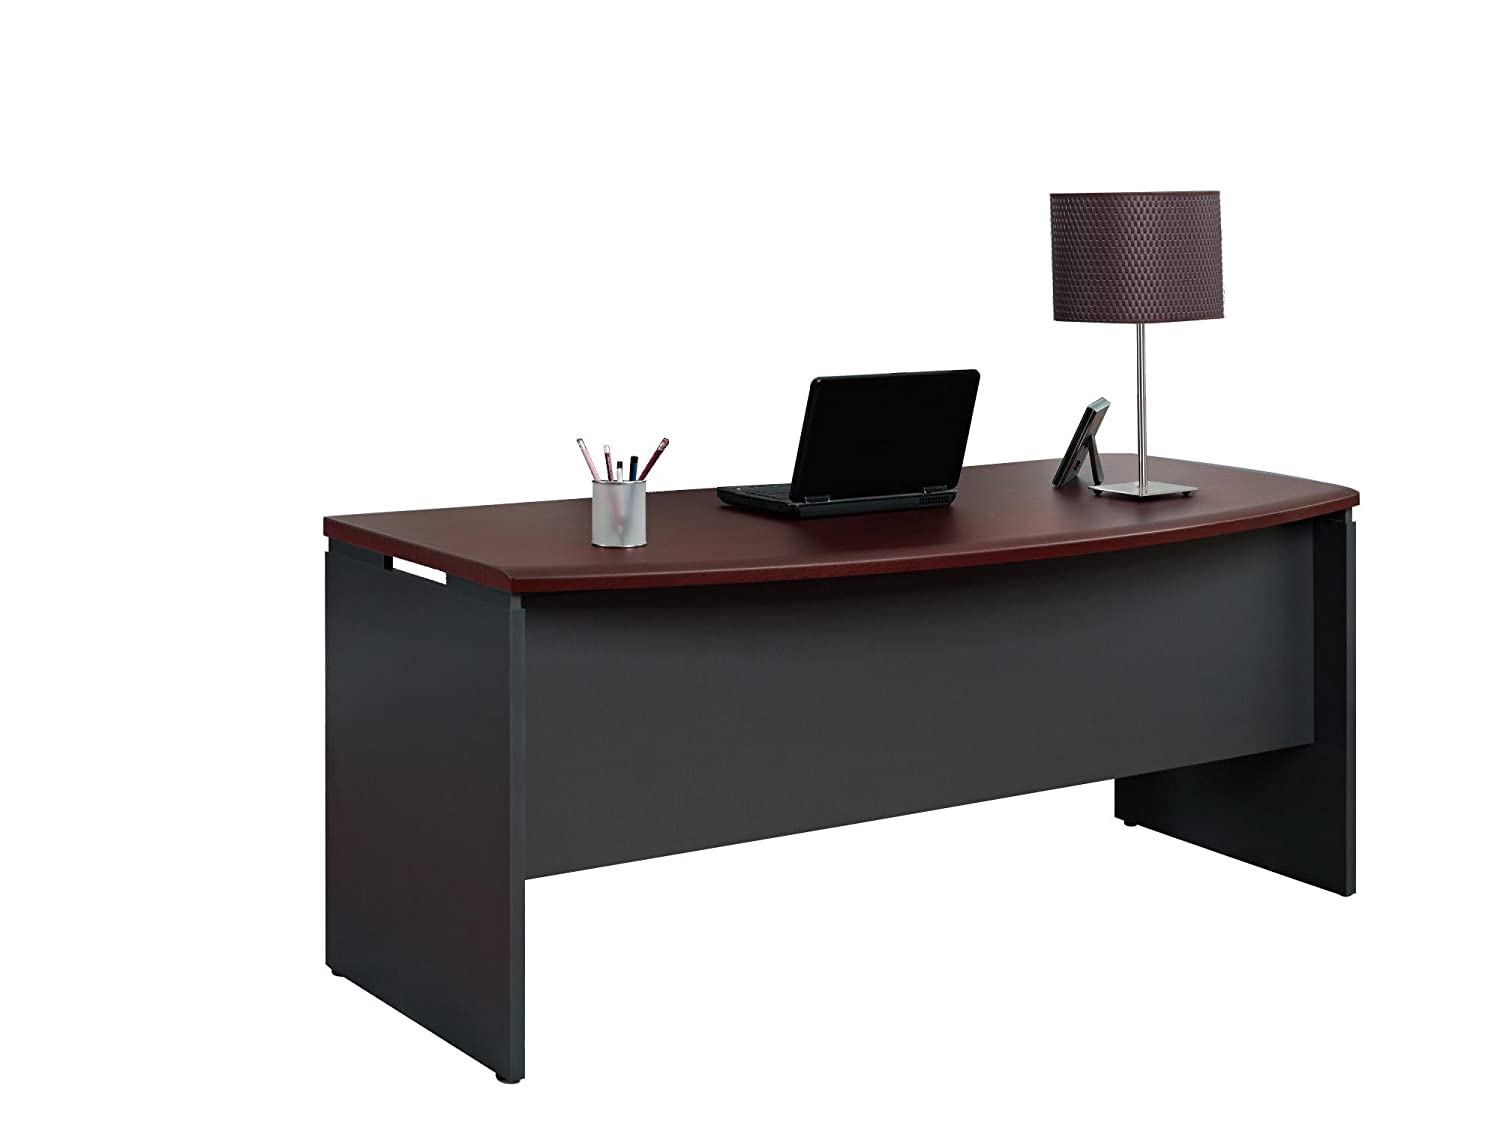 Amazon.com: Ameriwood Home Pursuit Executive Desk, Cherry: Kitchen U0026 Dining